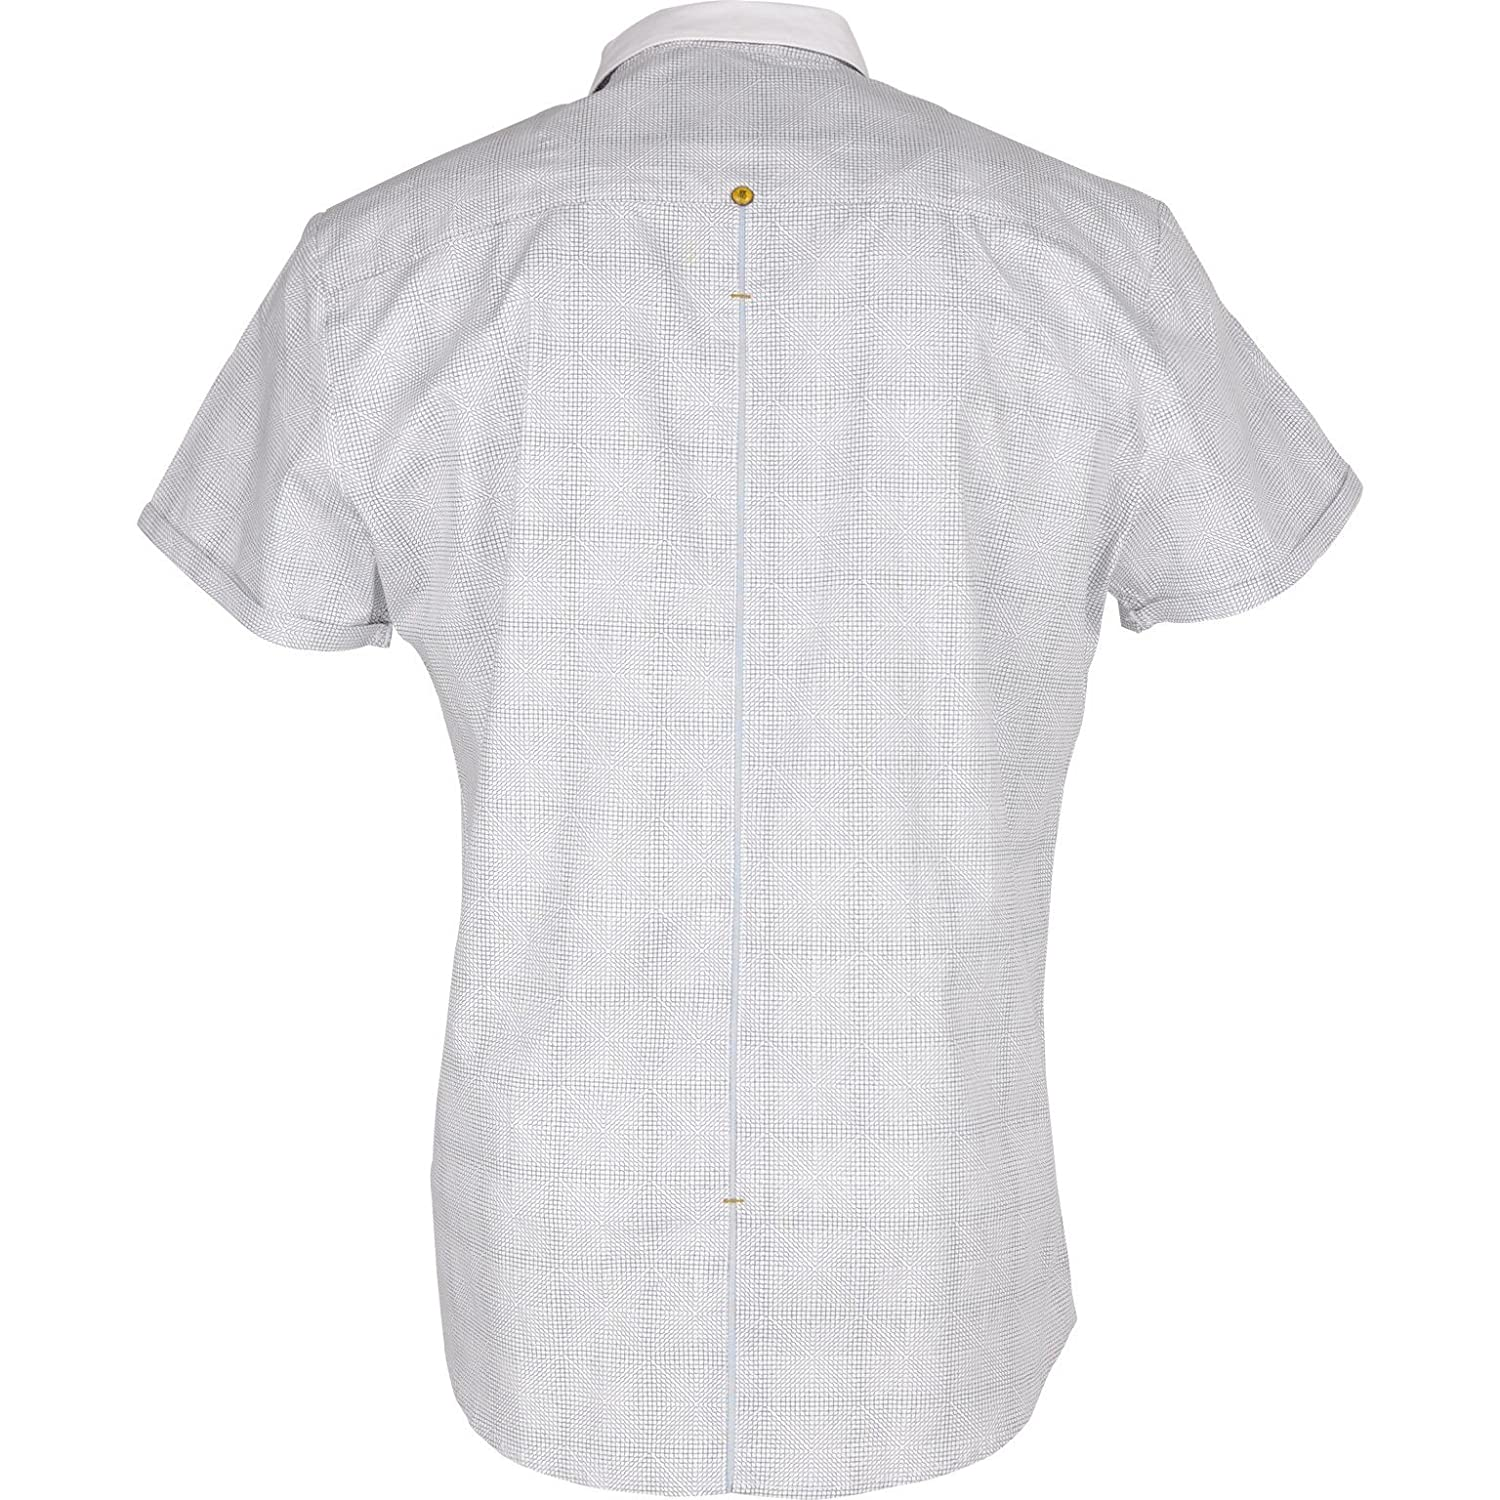 Amazon.com: No Excess - MENS SHORT SLEEVE SHIRT NO EXCESS (80420207): Clothing